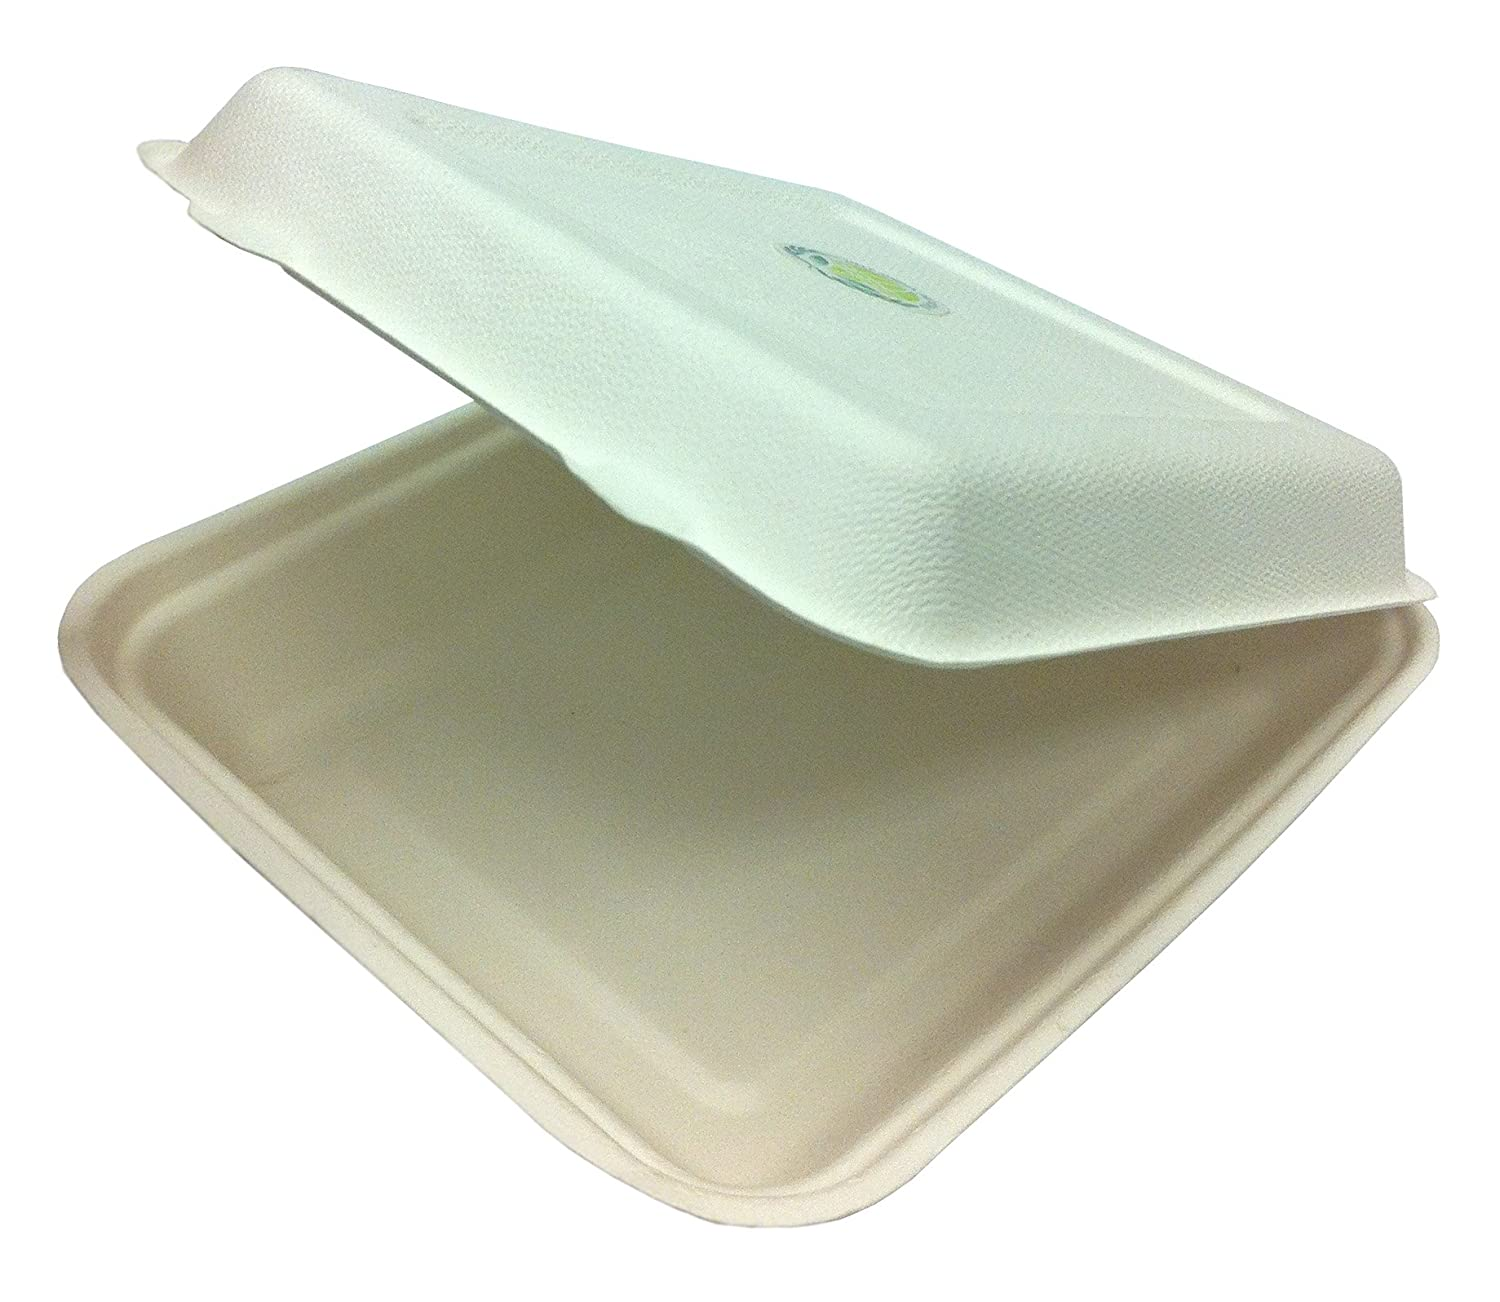 Clamshell Packaging For Food Clamshell Food Container